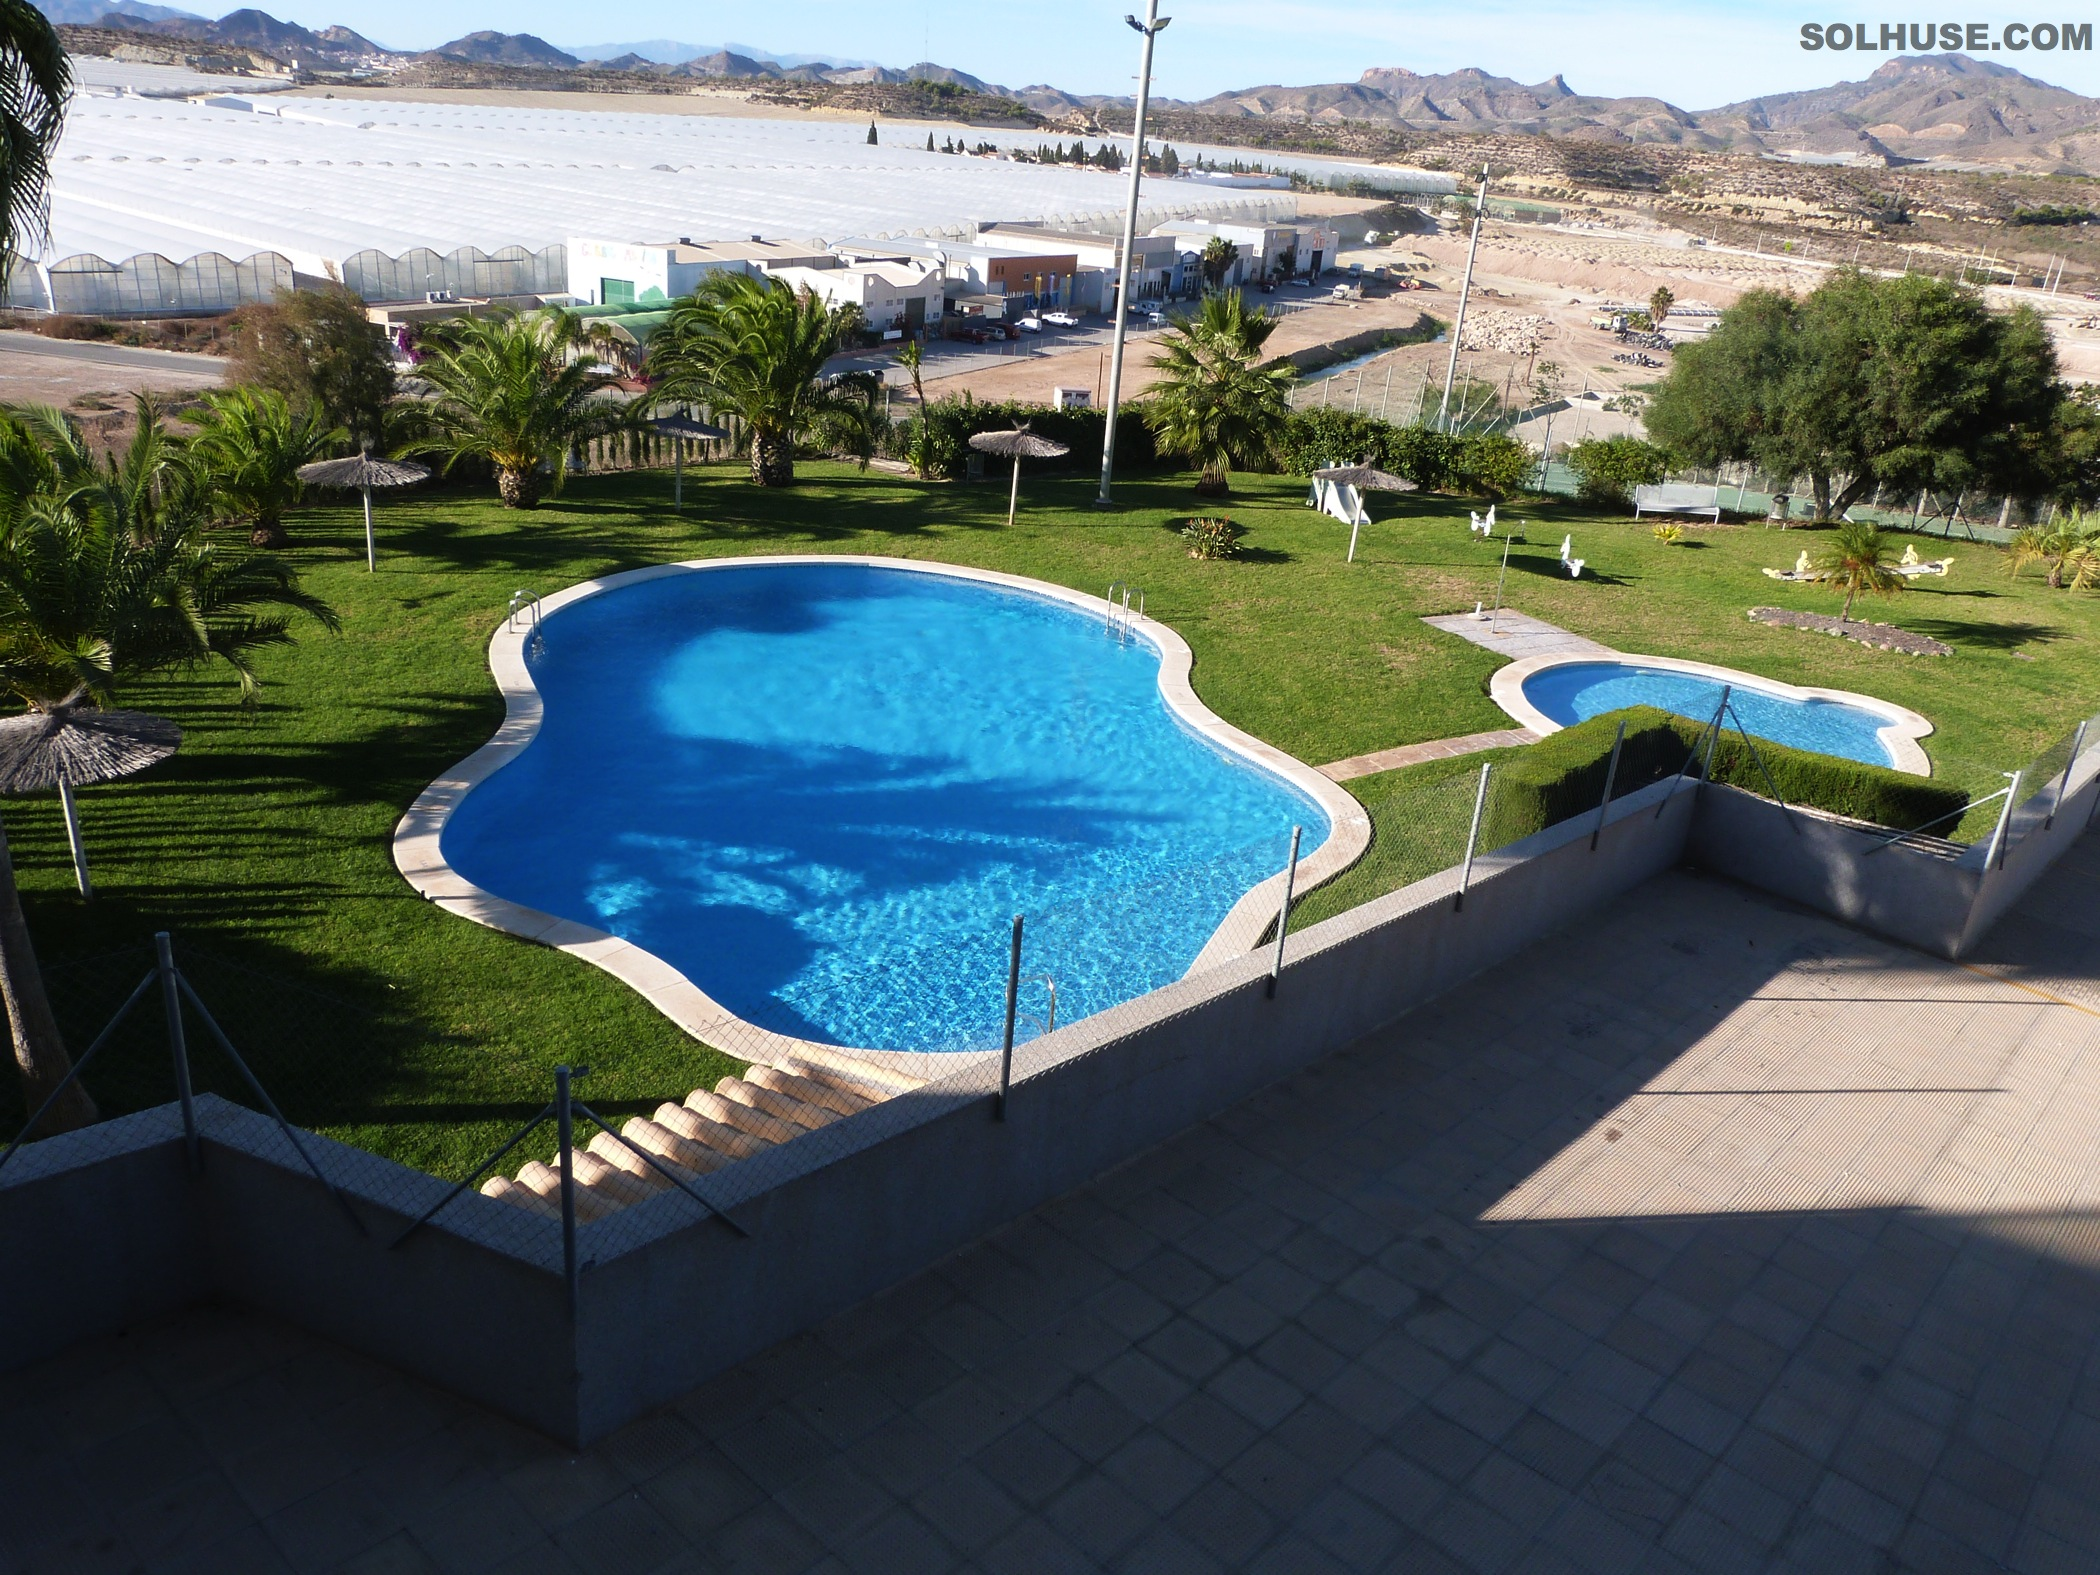 APARTMENT, 2 BEDS, 2 BATHS, STUNNING SEA VIEWS & POOL